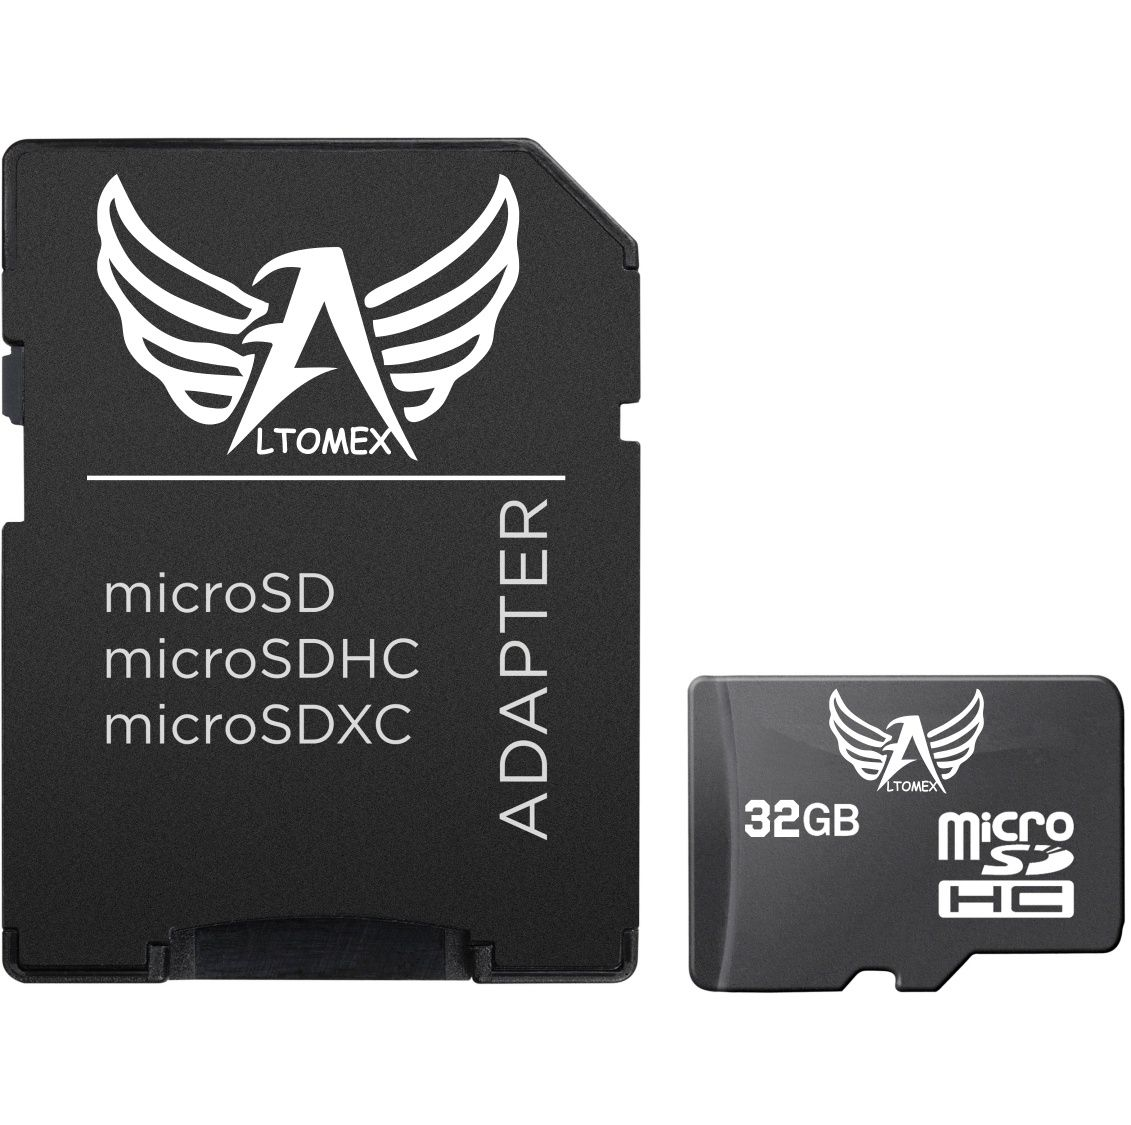 Micro SD | 32GB | Altomex AL-MO-32